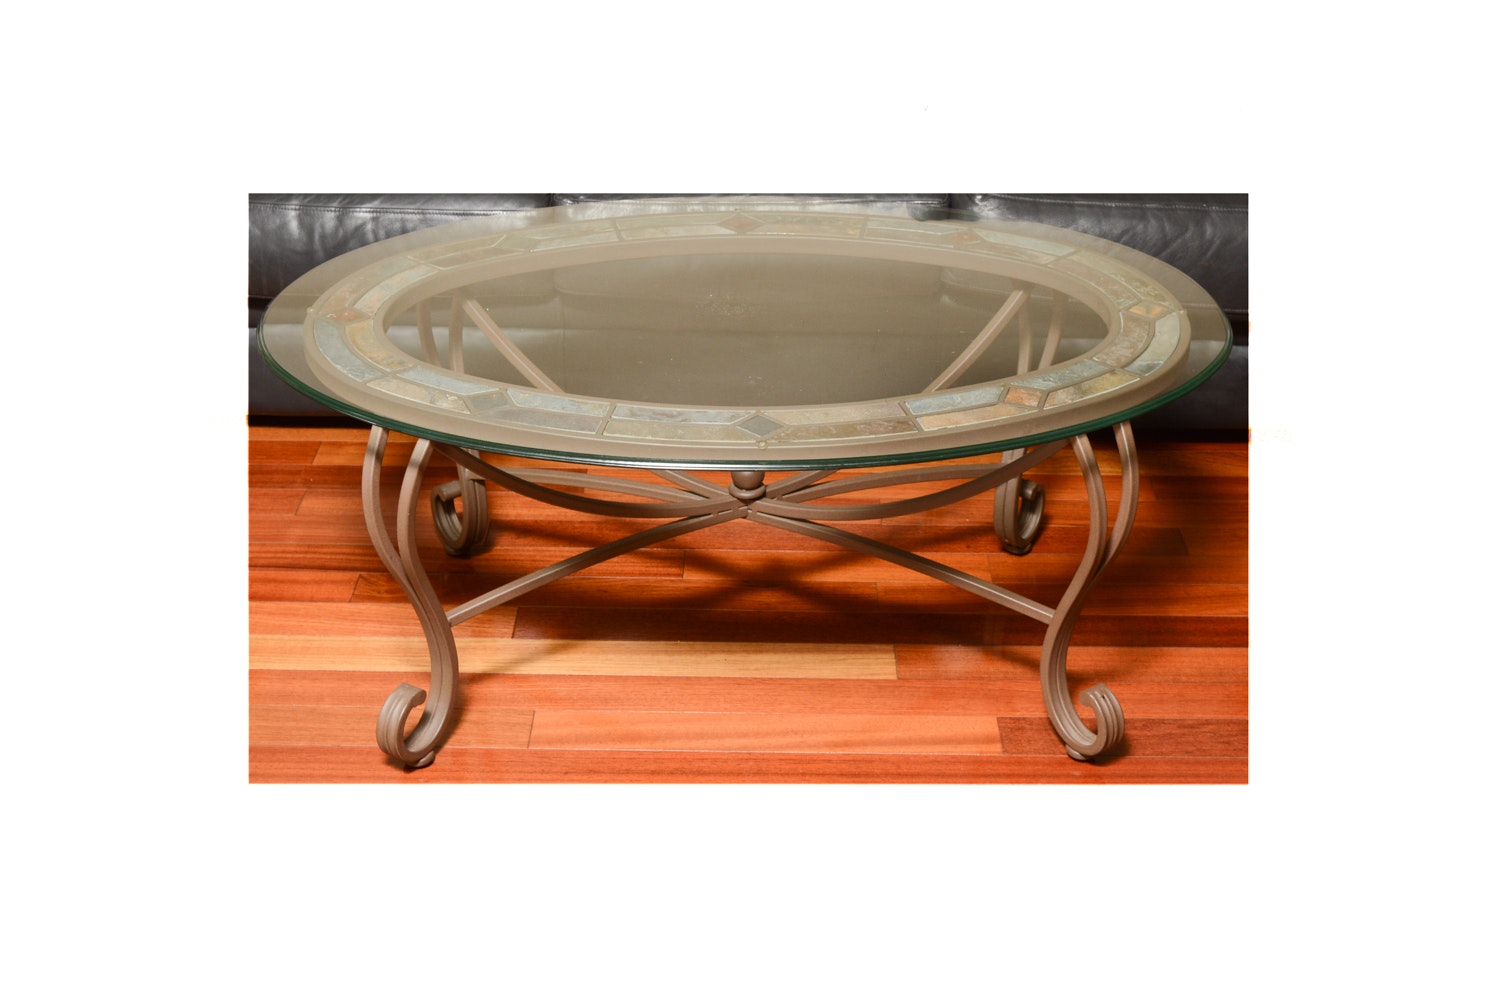 Contemporary Glass Top Coffee Table with Tile Inlay